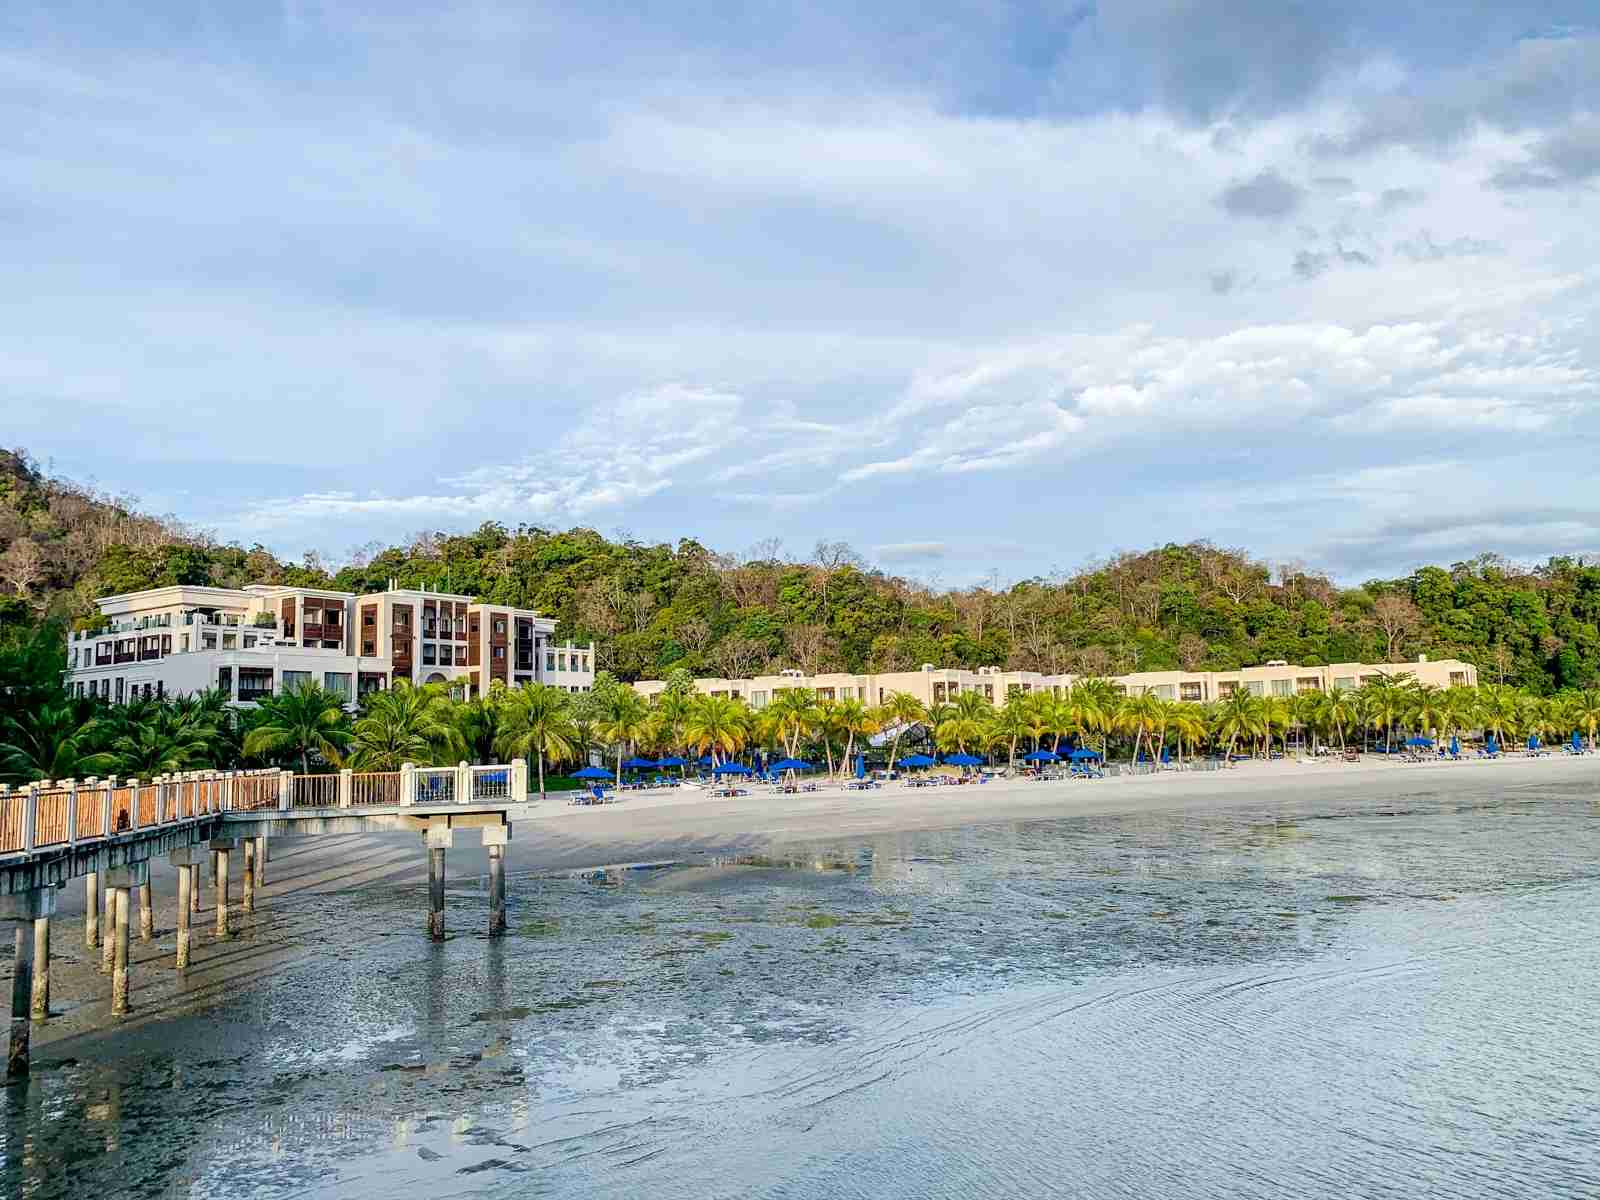 The Marriott Gold status provided by the Platinum Card might get you an upgrade at Marriott properties like the St. Regis Langkawi (Photo by Ethan Steinberg/The Points Guy)